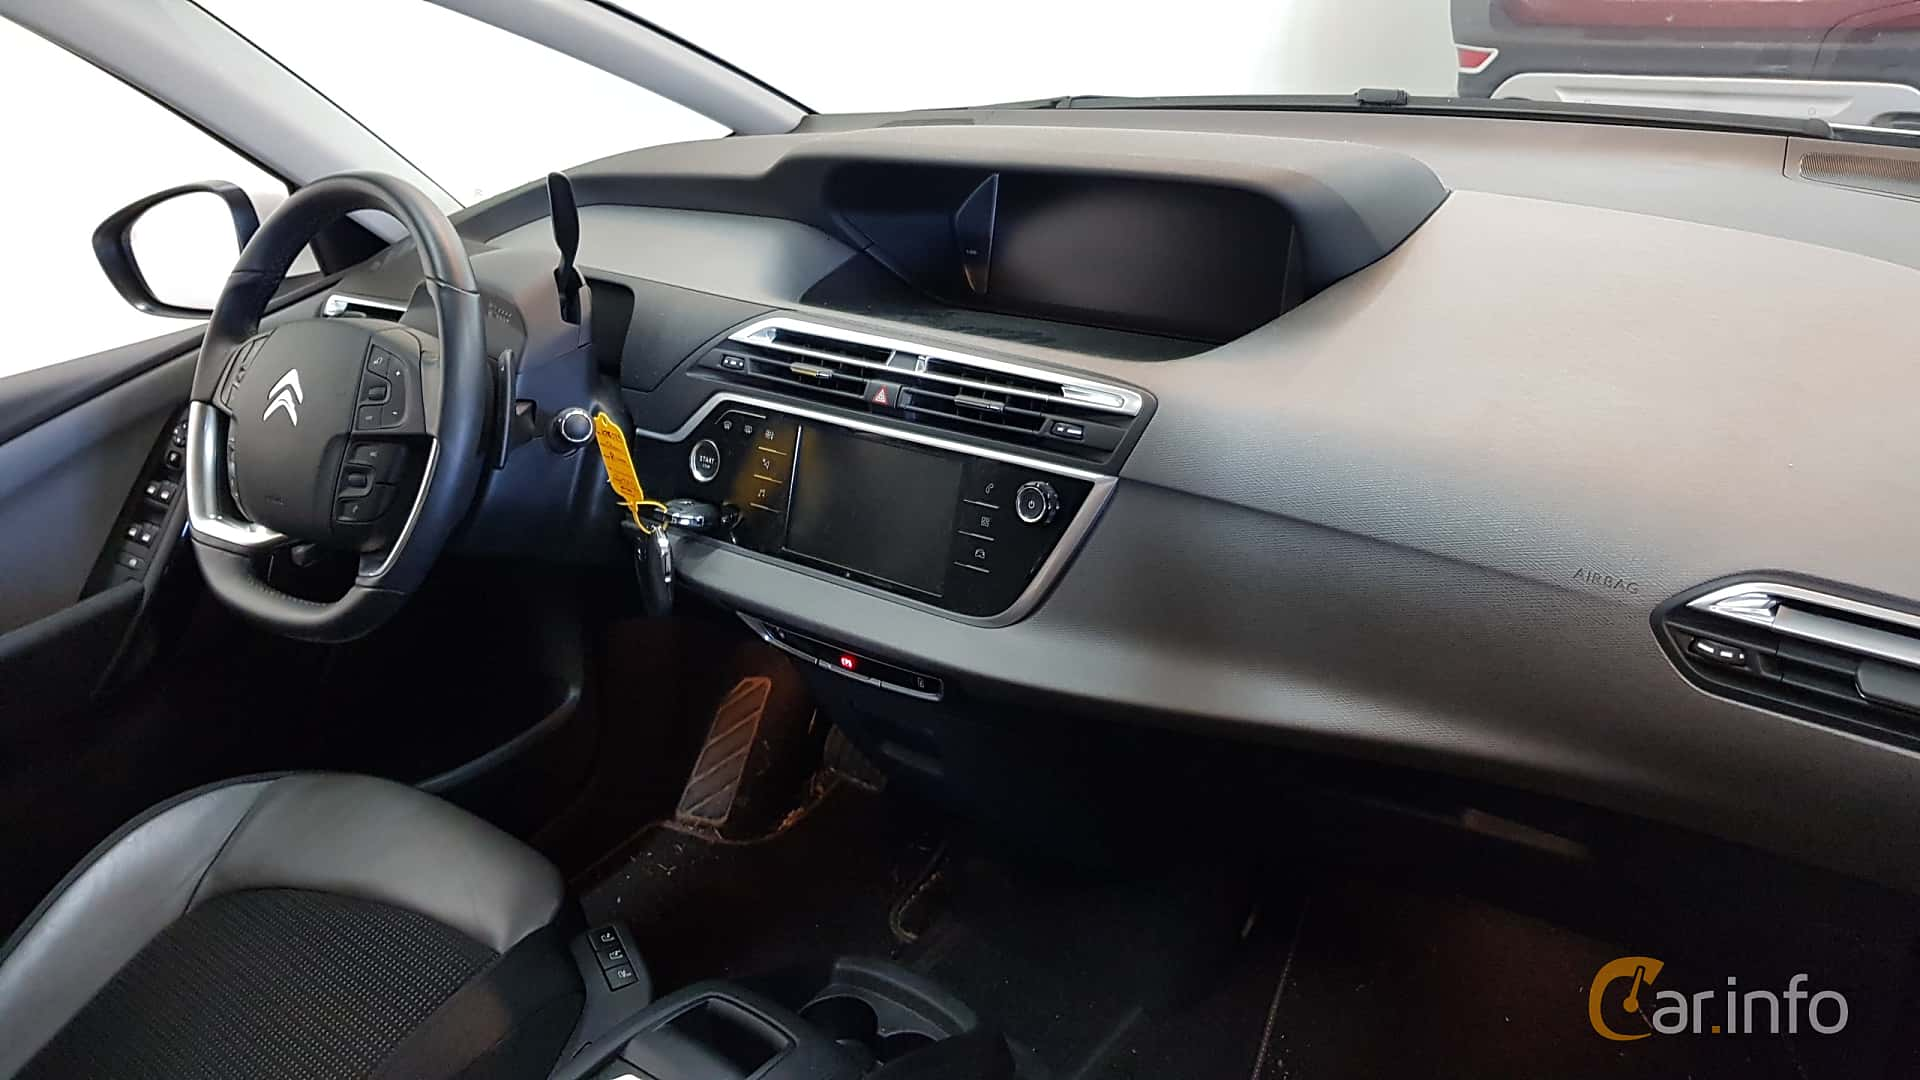 Citroën Grand C4 Picasso 1.6 BlueHDI EAT, 120hp, 2017